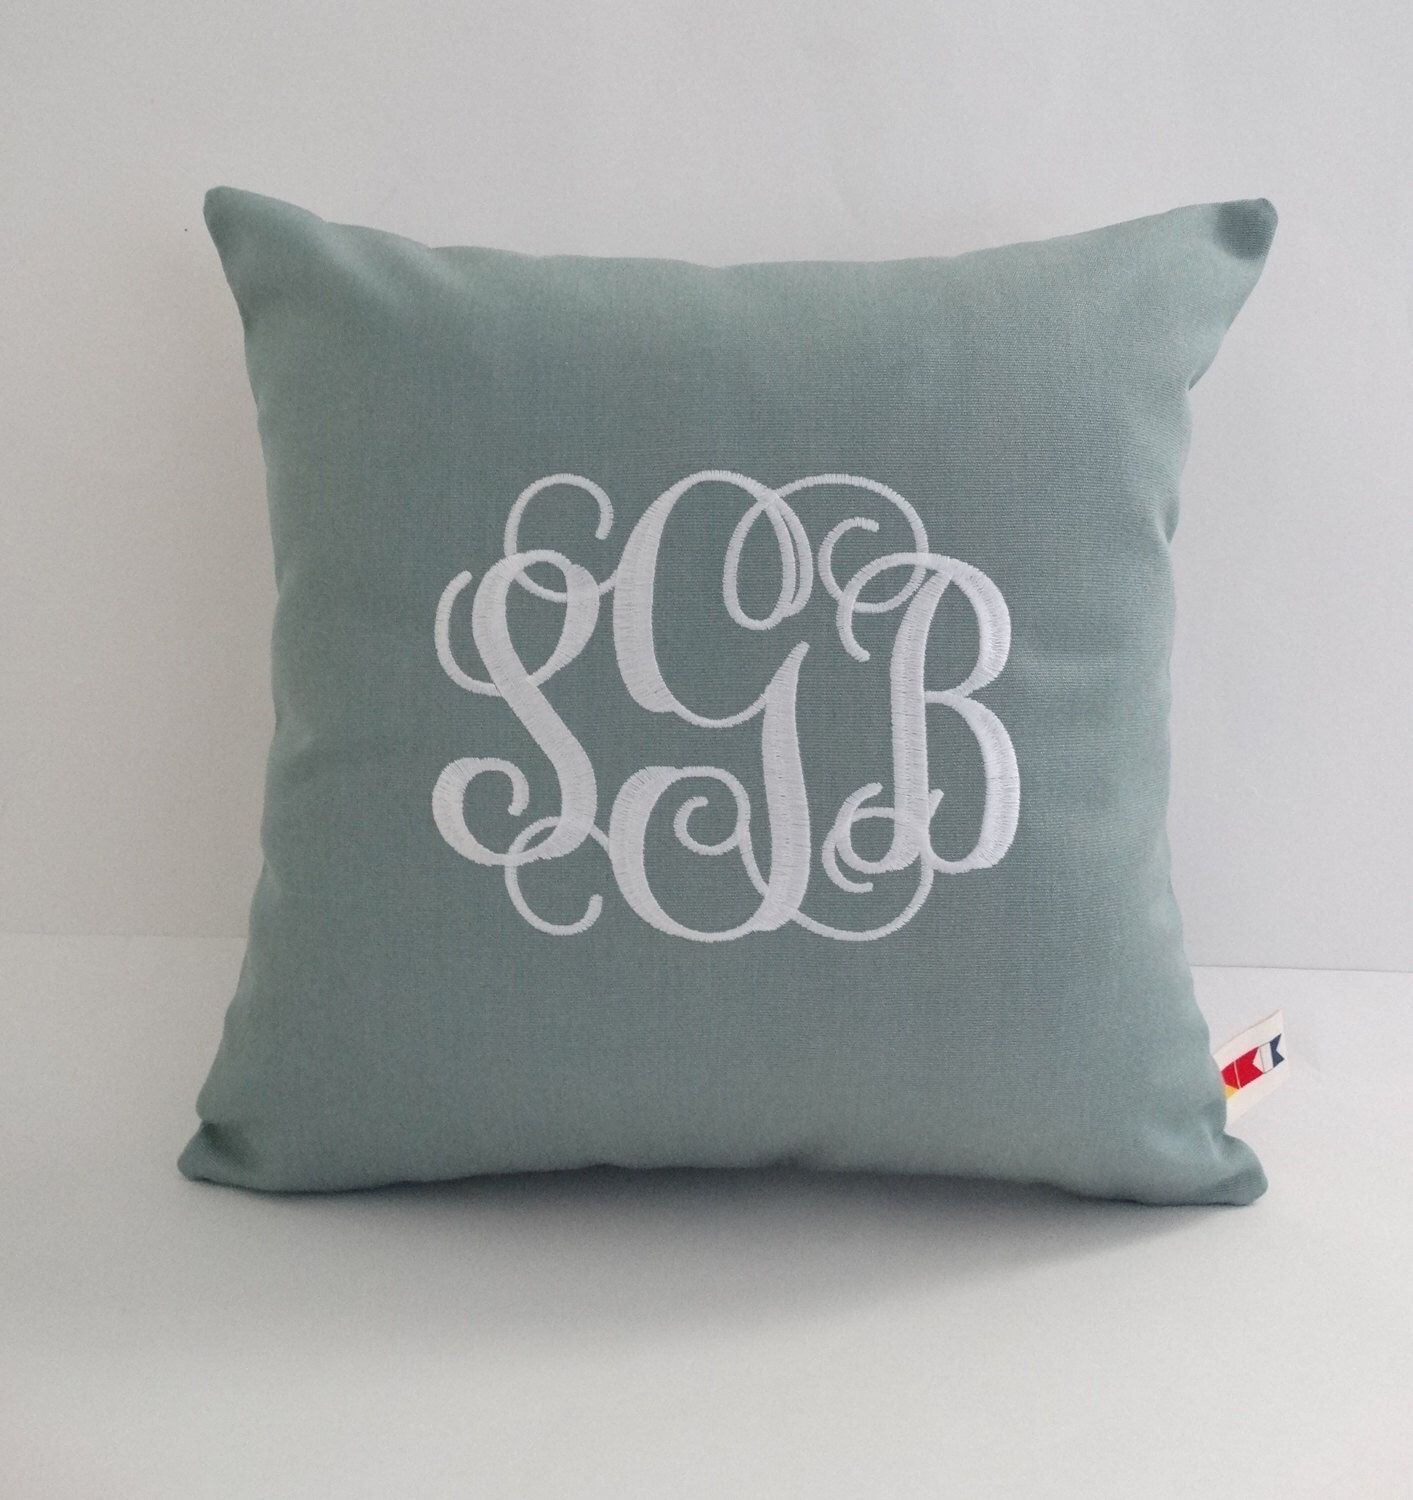 Initial Pillow Covers Wedding Monogram Pillow Cover Sunbrella Indoor Outdoor Embroidered